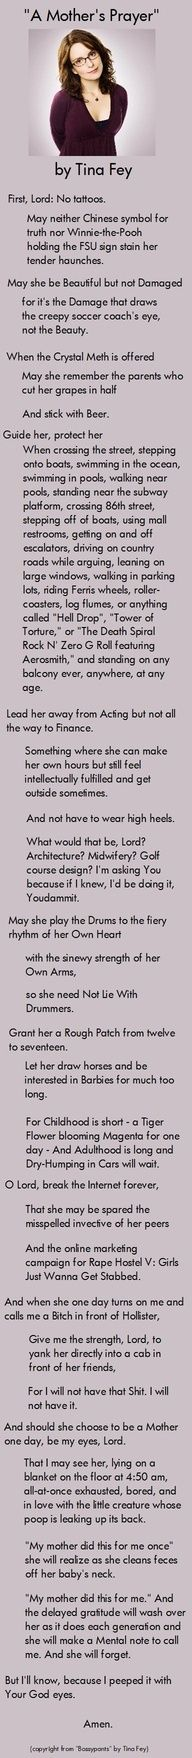 OMG yes!! I will hang this in my child's room and pray it everyday with them. So funny! Tina Fey: A real mother's prayer.